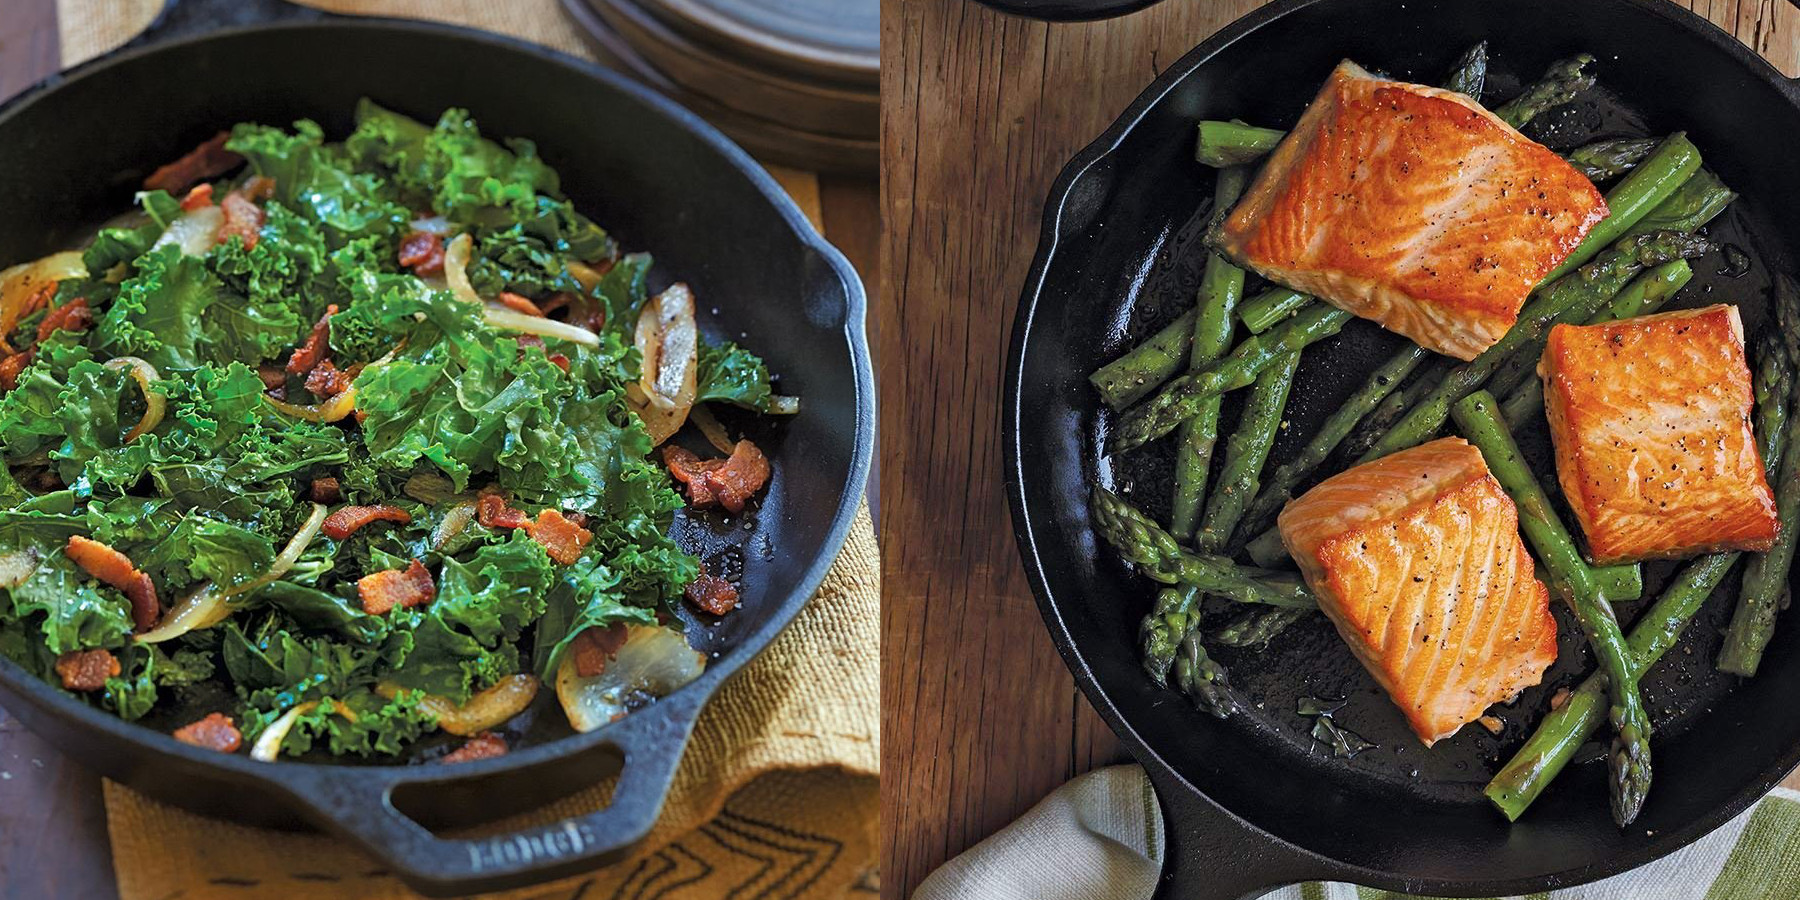 Ditch that old skillet for a best-selling cast iron Lodge at $12 shipped (Reg. up to $27)